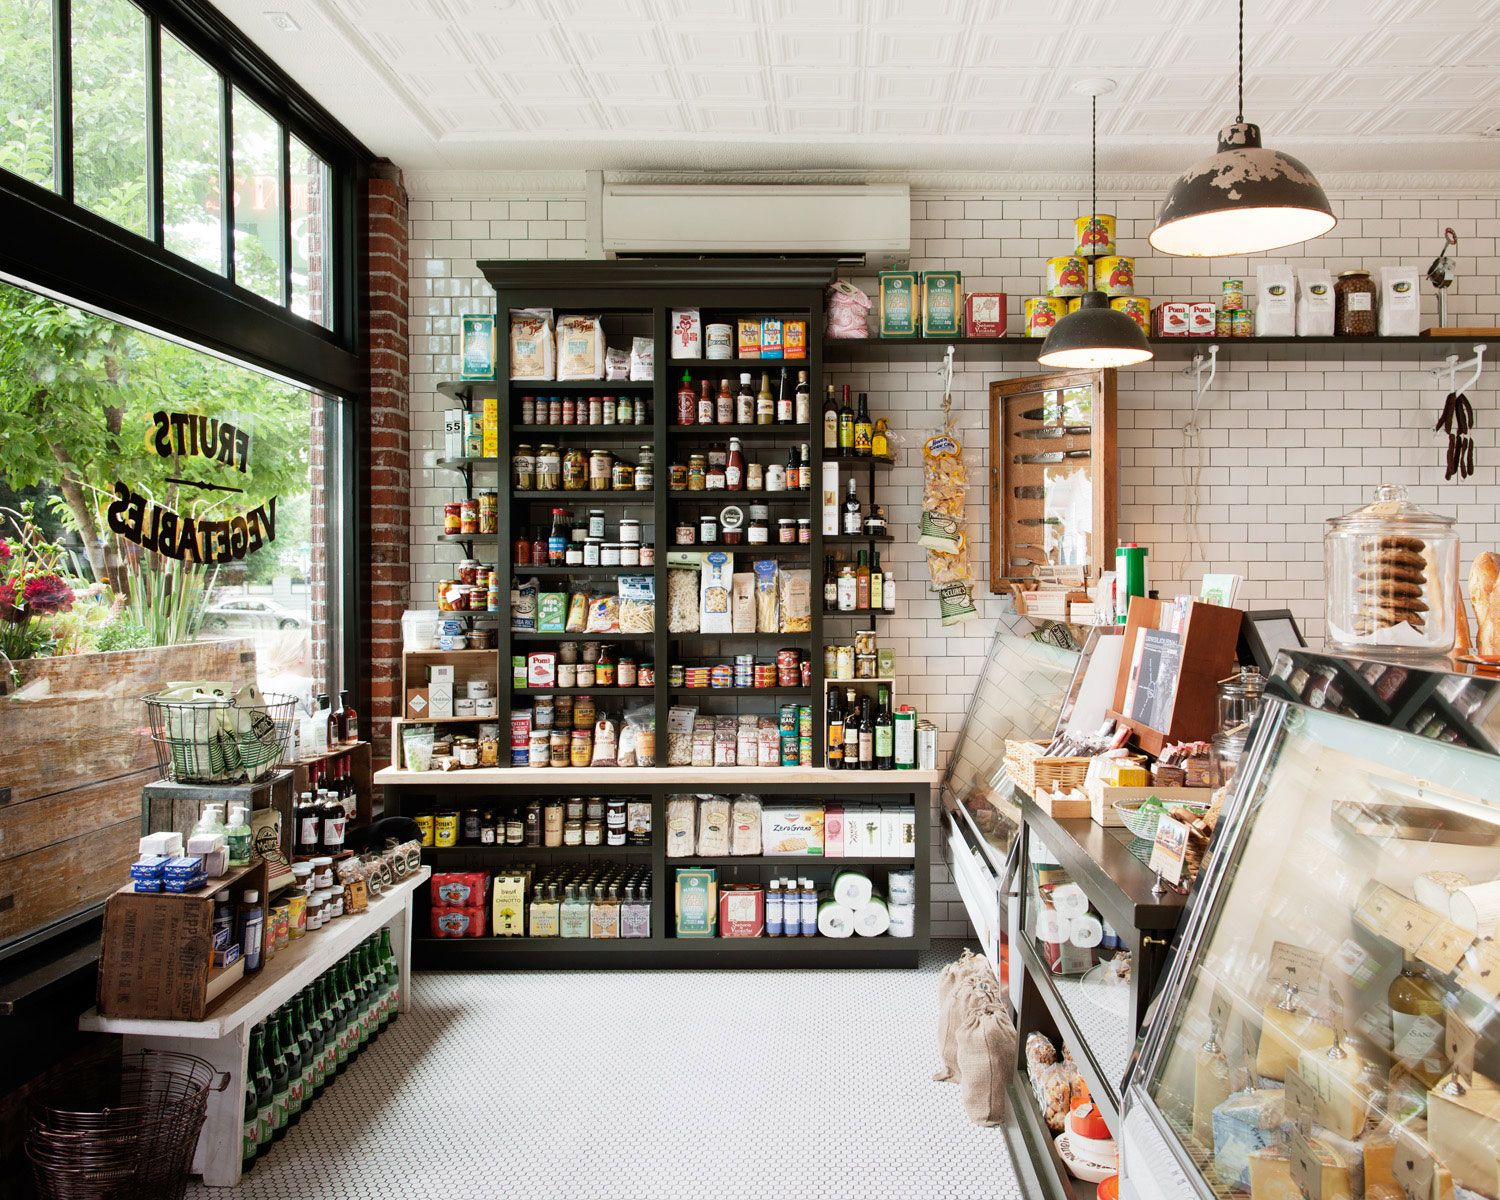 The West S Best Local Food Shops Local Food Shop Shop Interiors